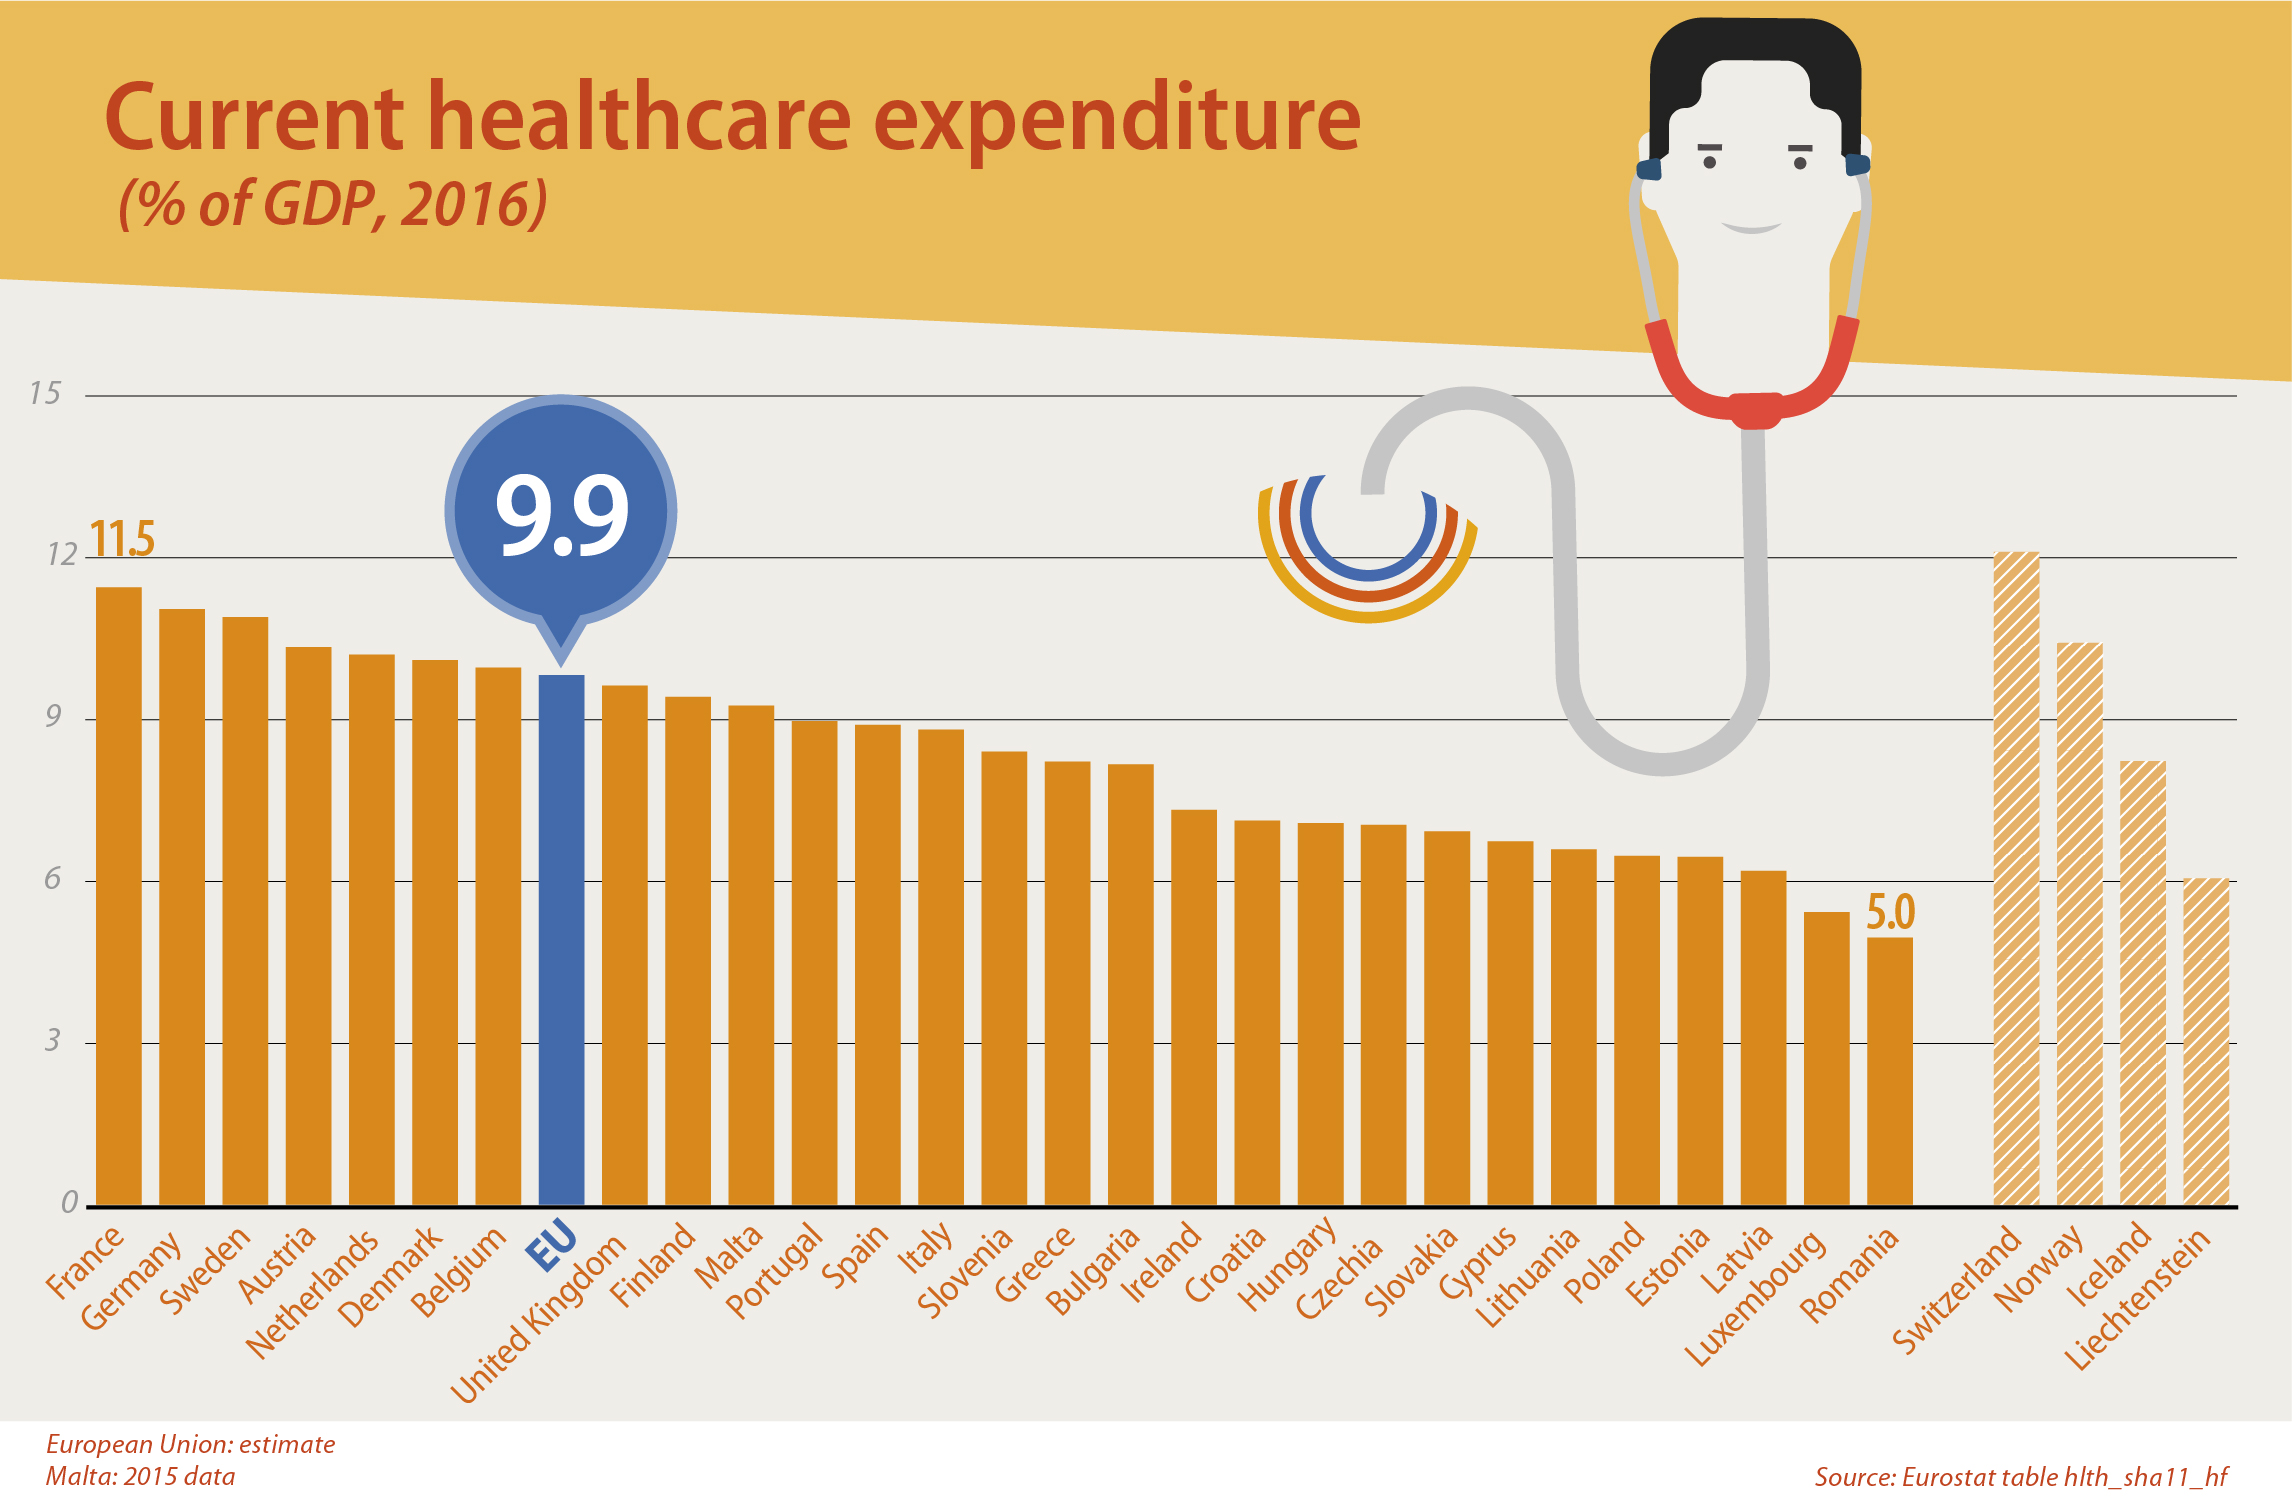 Ranked bar chart showing percentage of GDP spent on healthcare by country, 2016